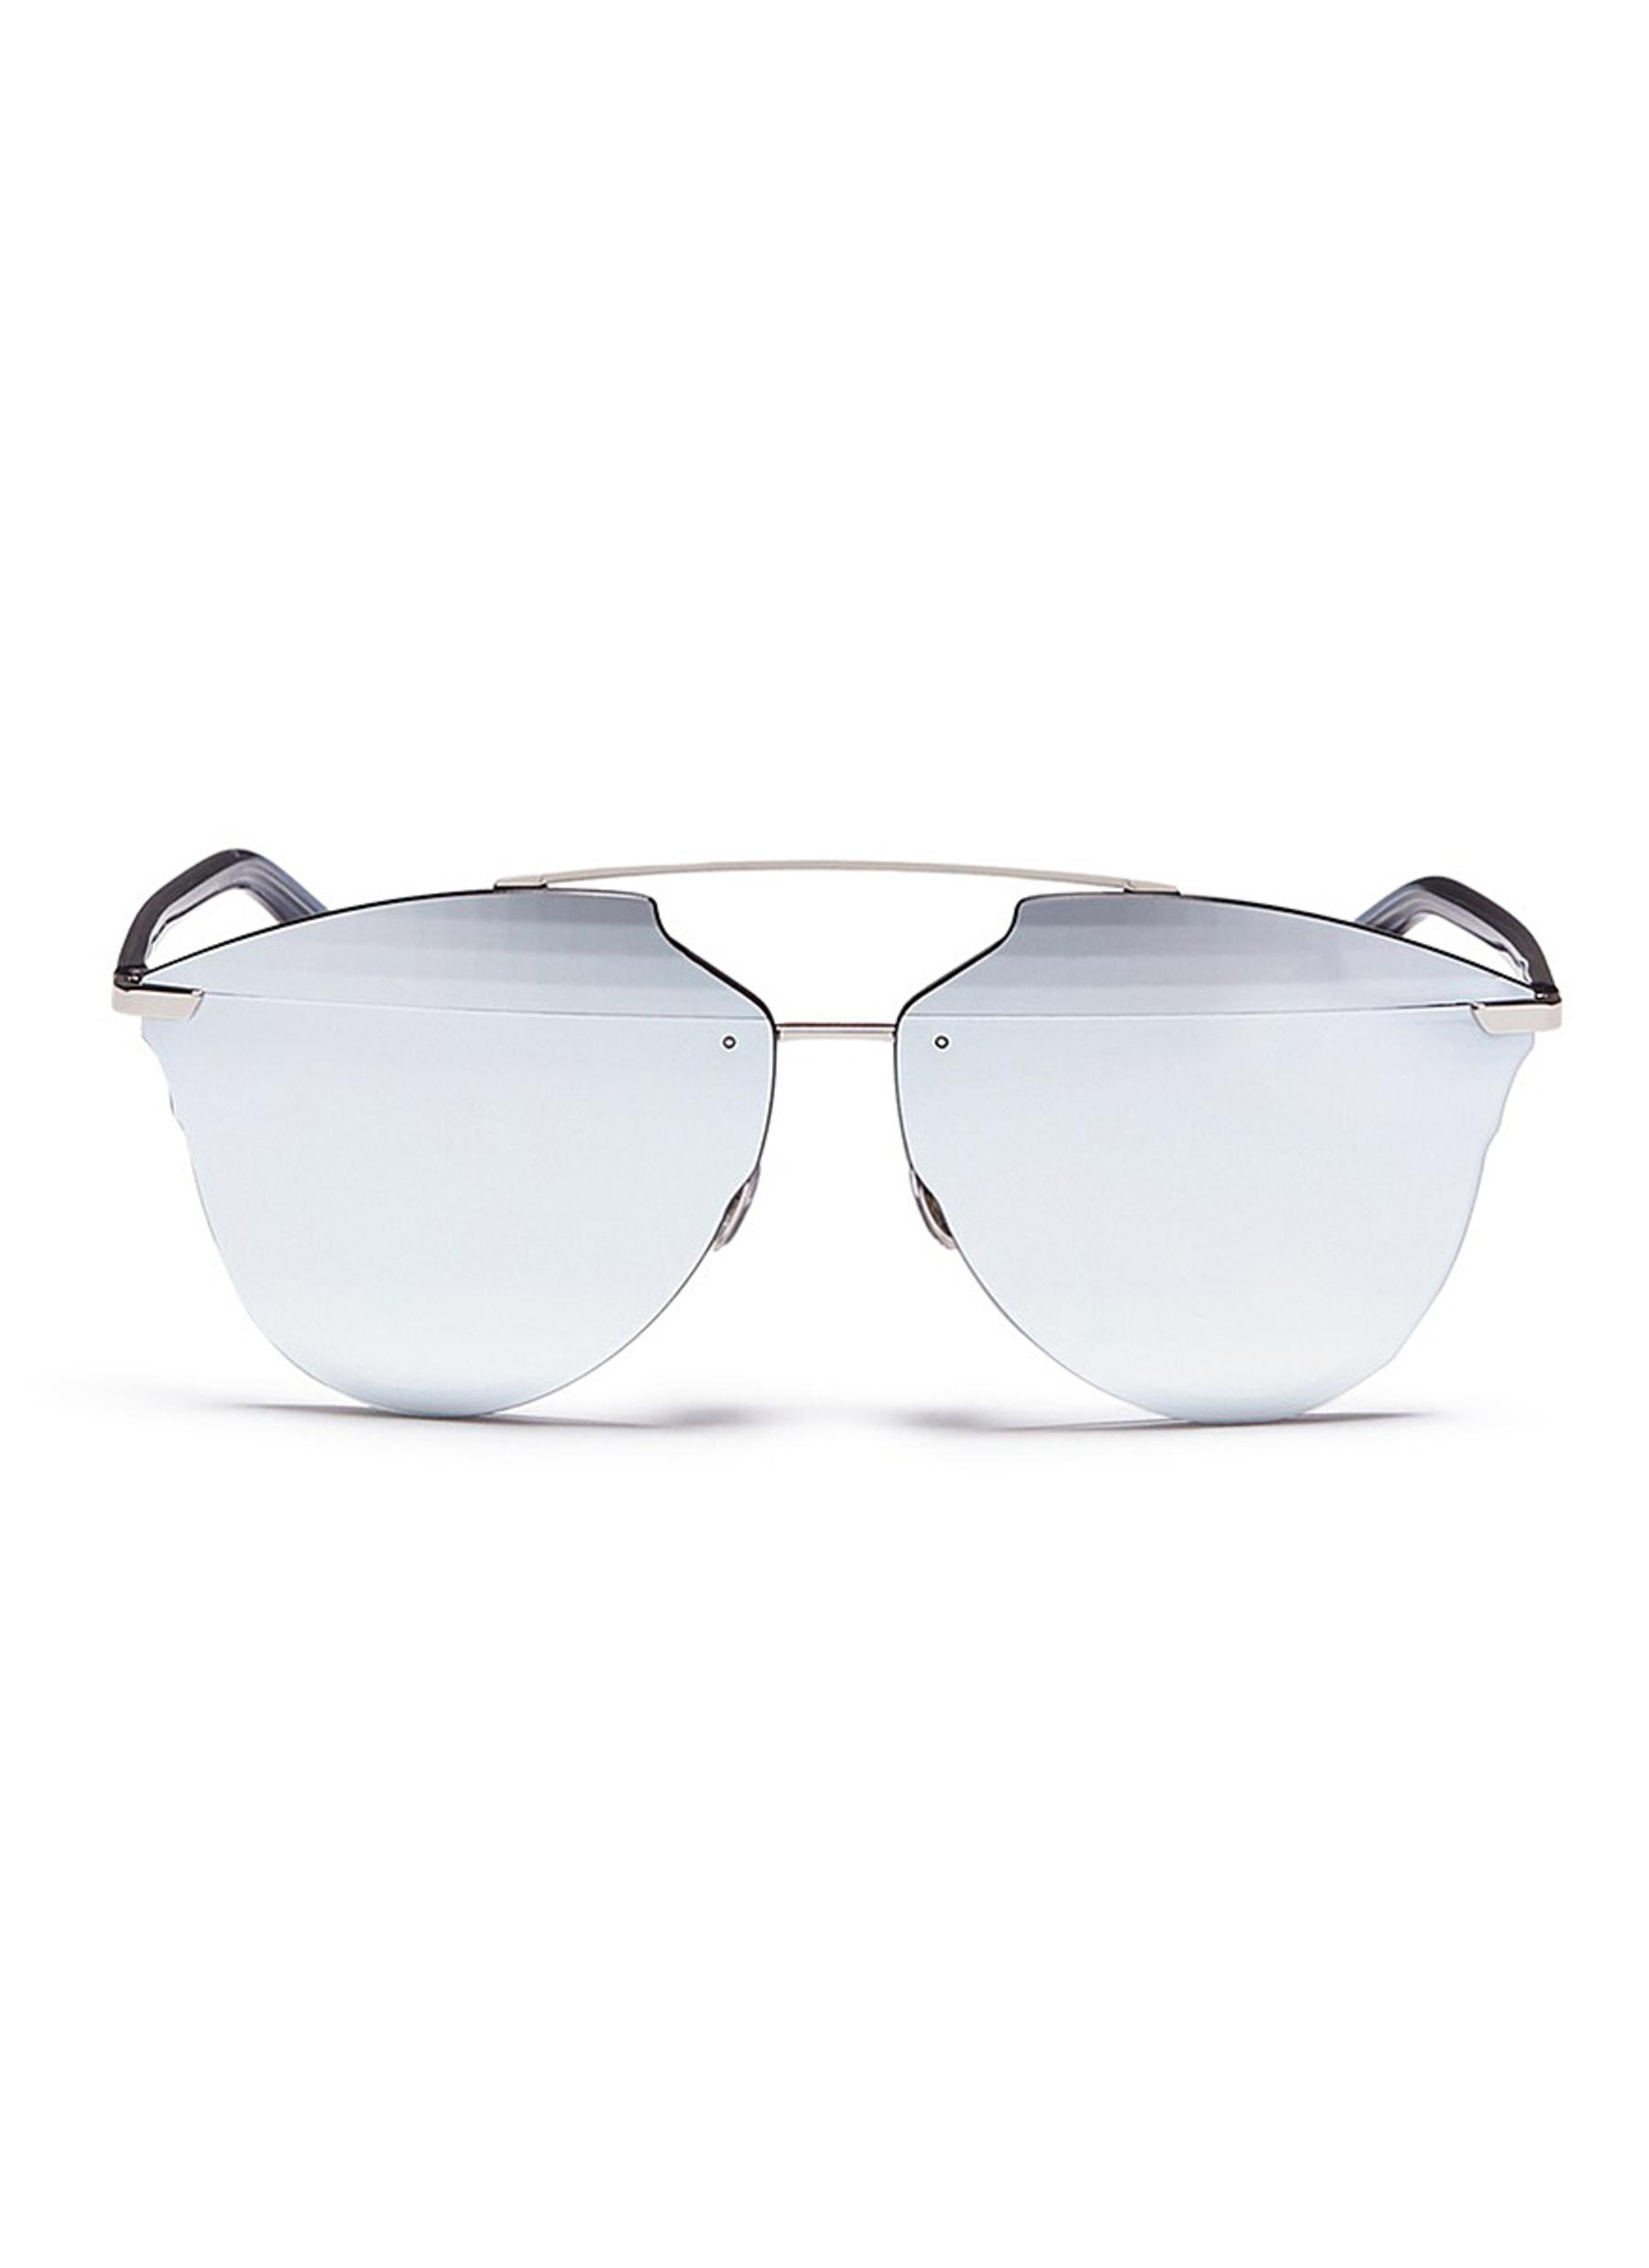 d66a95323fb0 Dior.  Dior Reflected  prism effect mounted mirror lens sunglasses